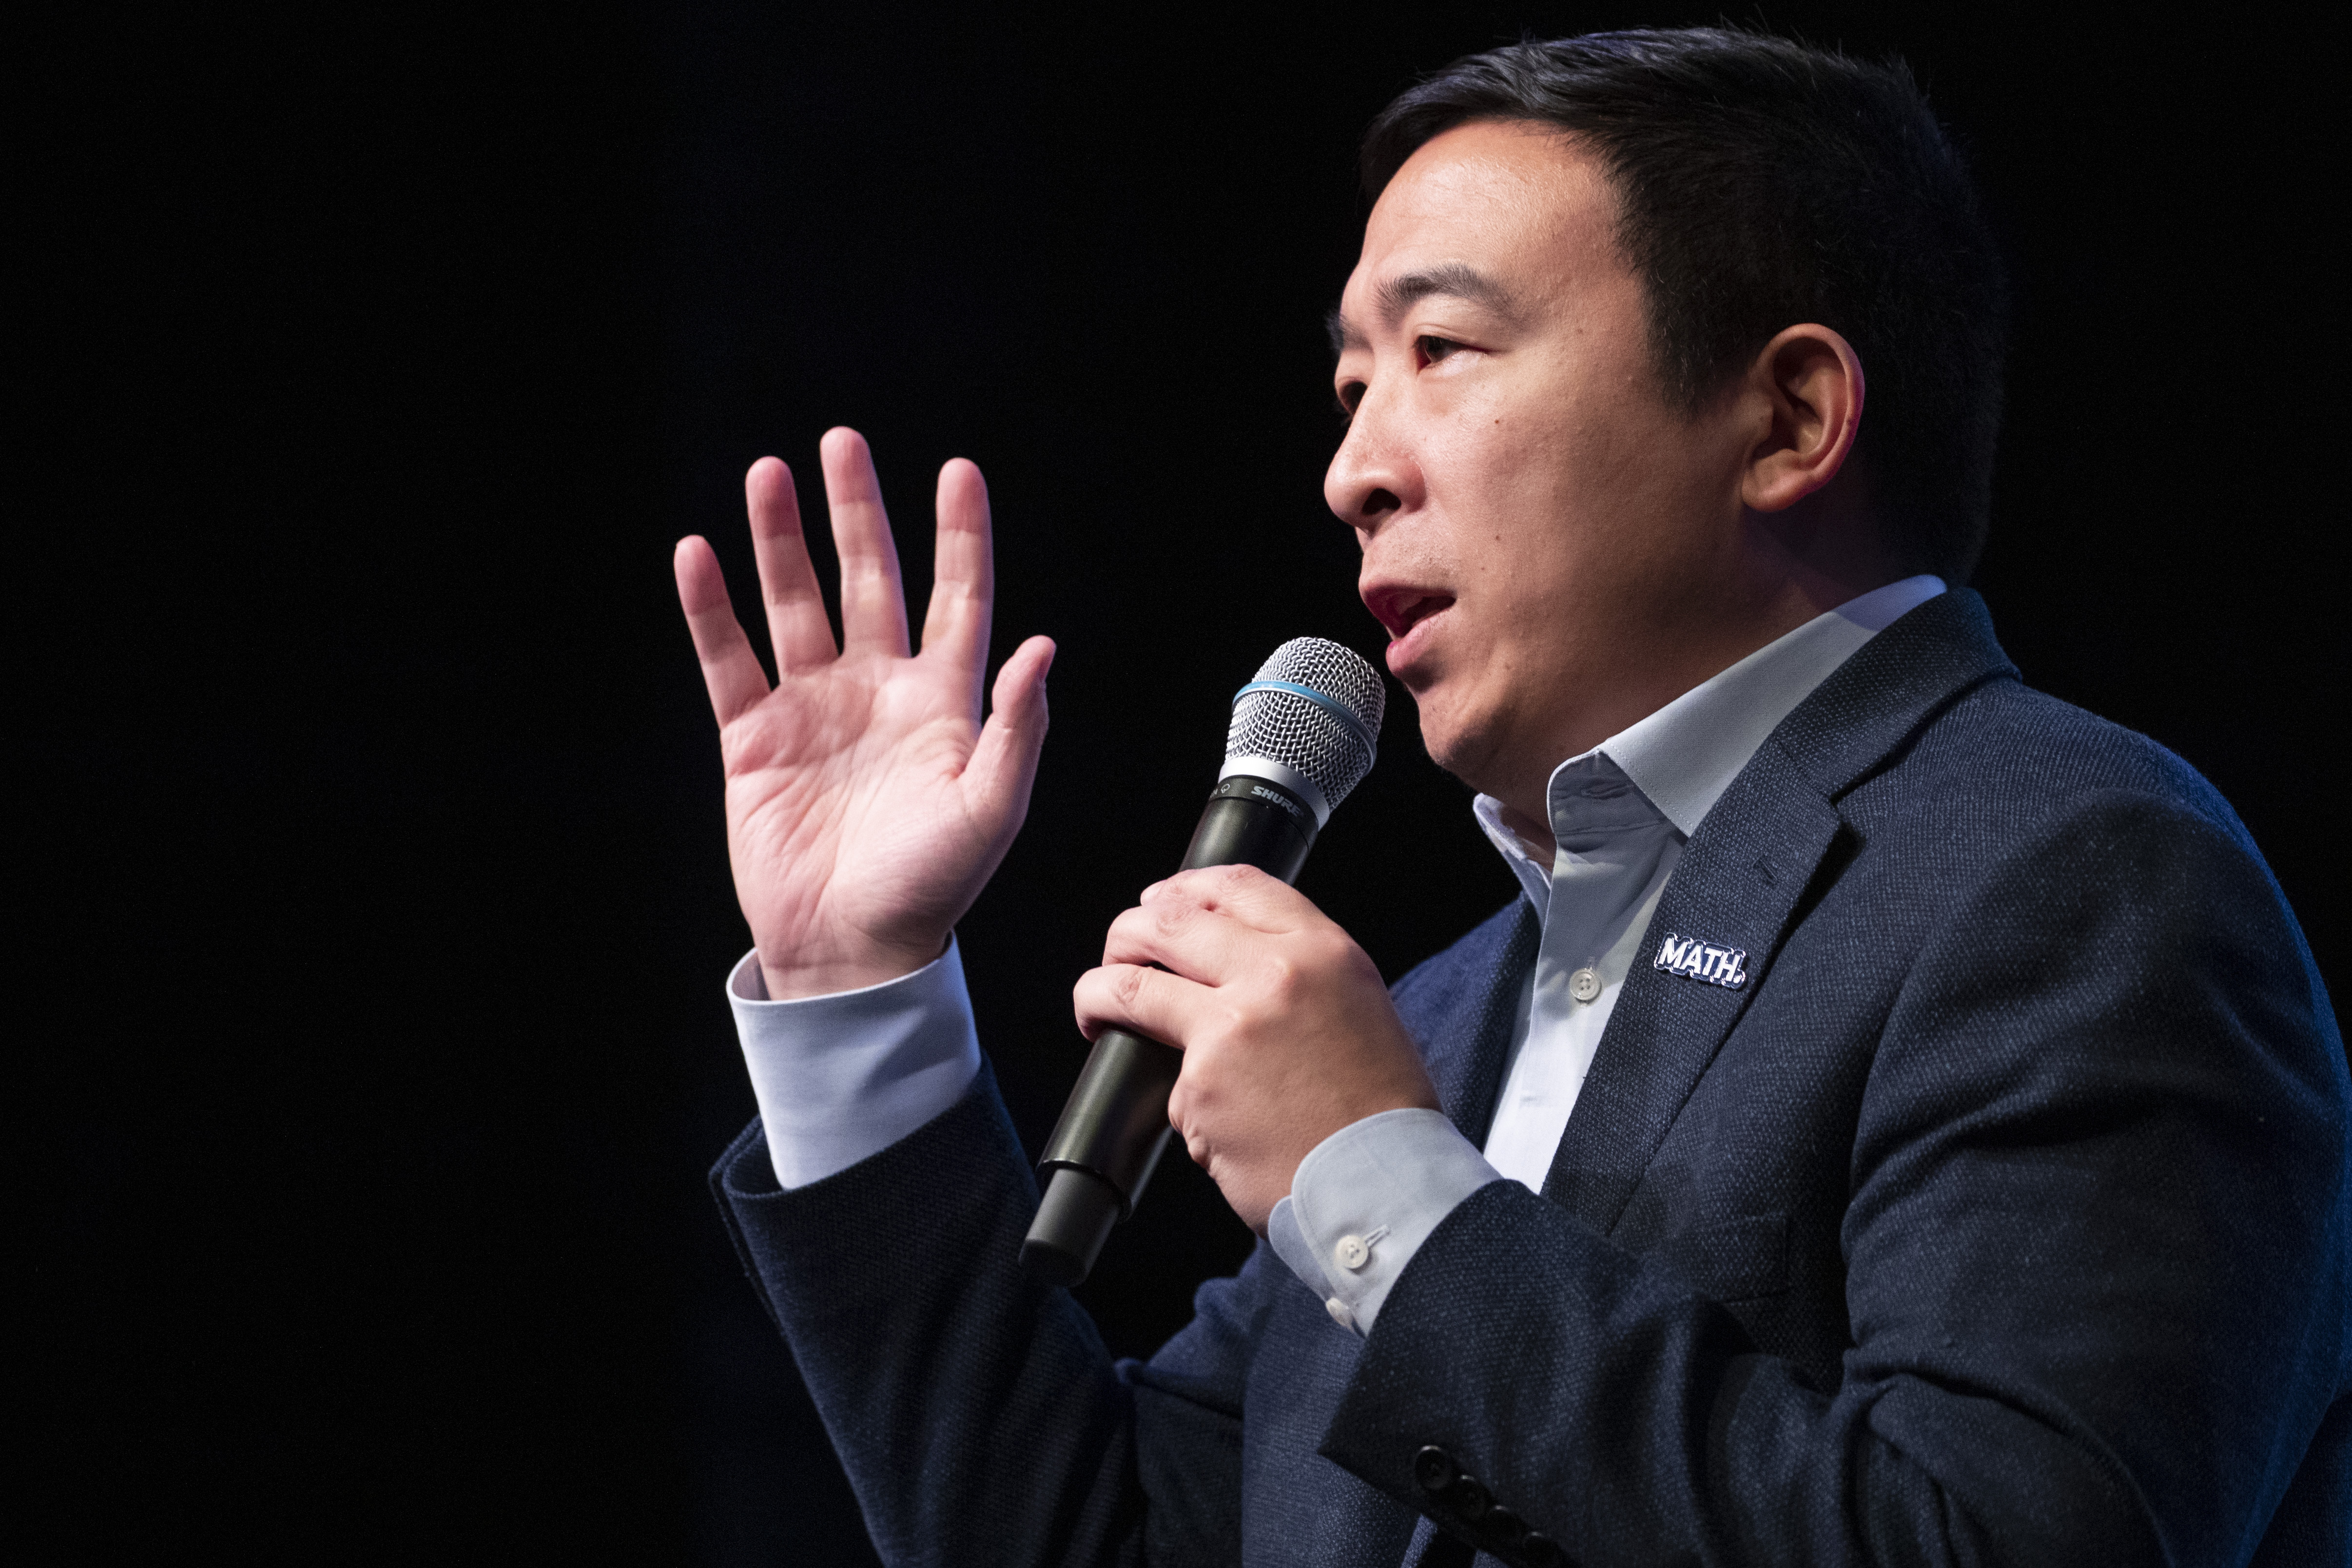 Andrew Yang speaks during the New Hampshire Youth Climate and Clean Energy Town Hall on Feb. 5, 2020, in Concord, N.H. (Mary Altaffer/AP)